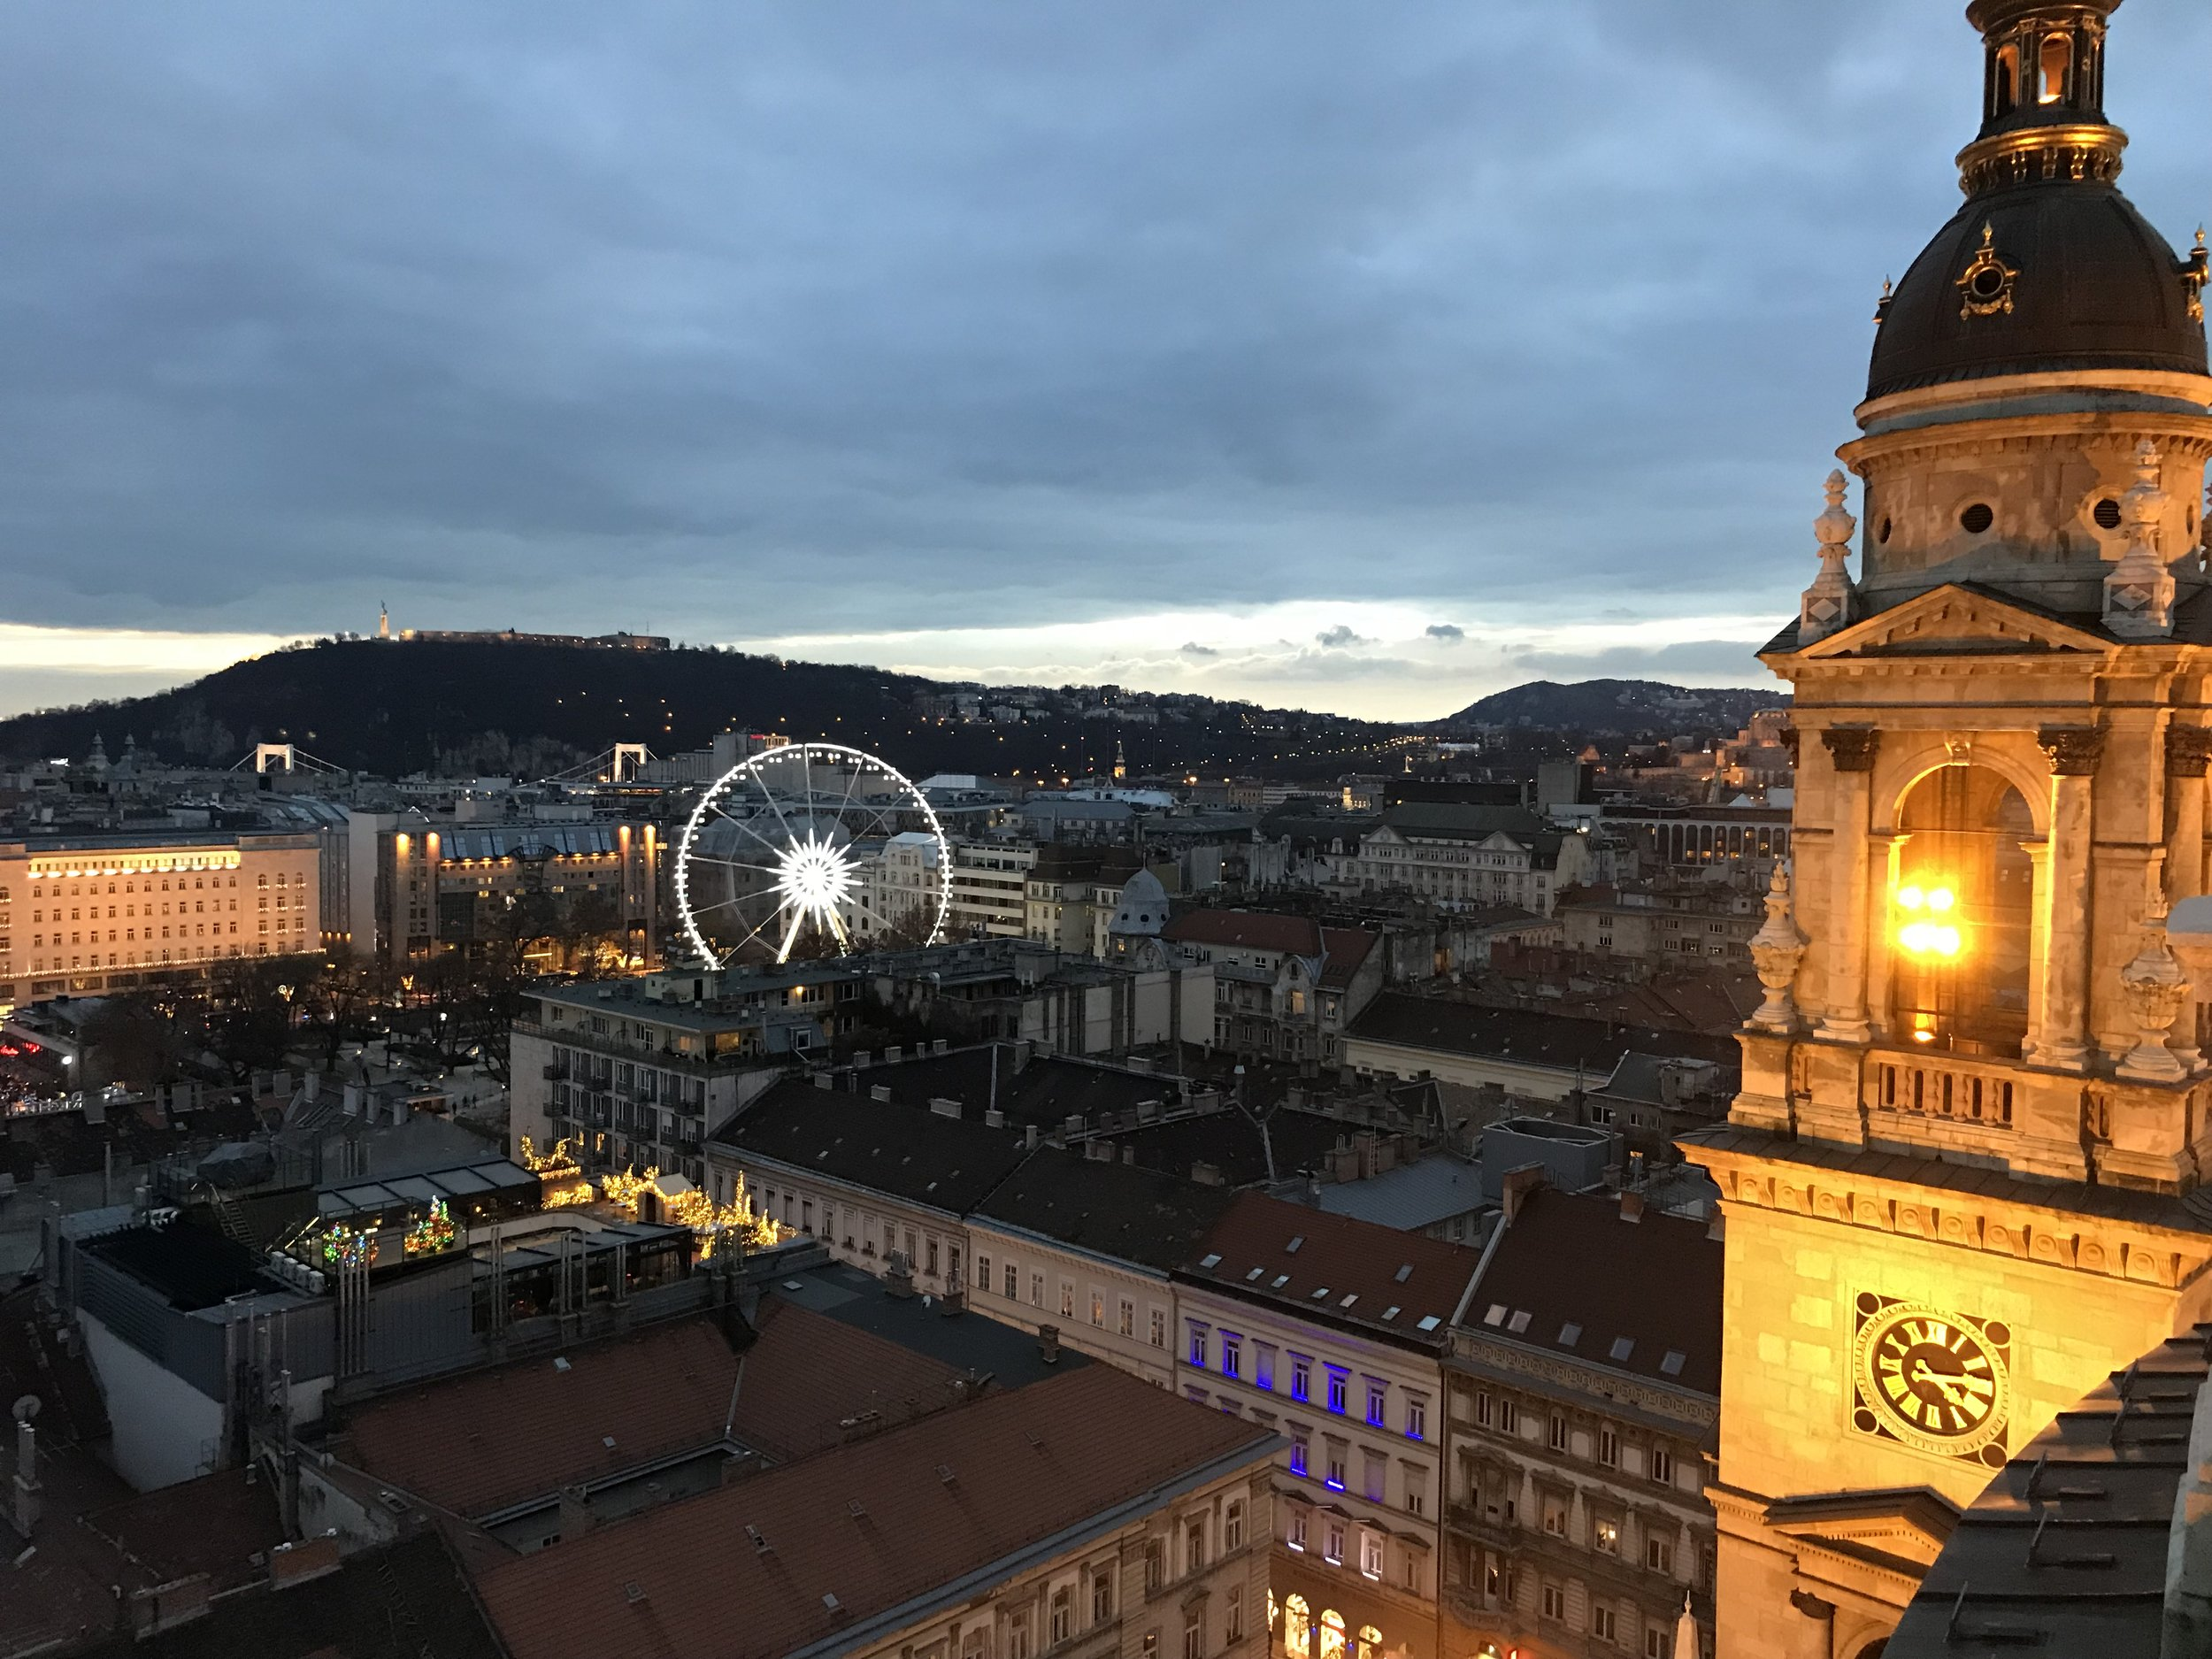 The Budapest Eye from the dome of the Basilica of St Stephen